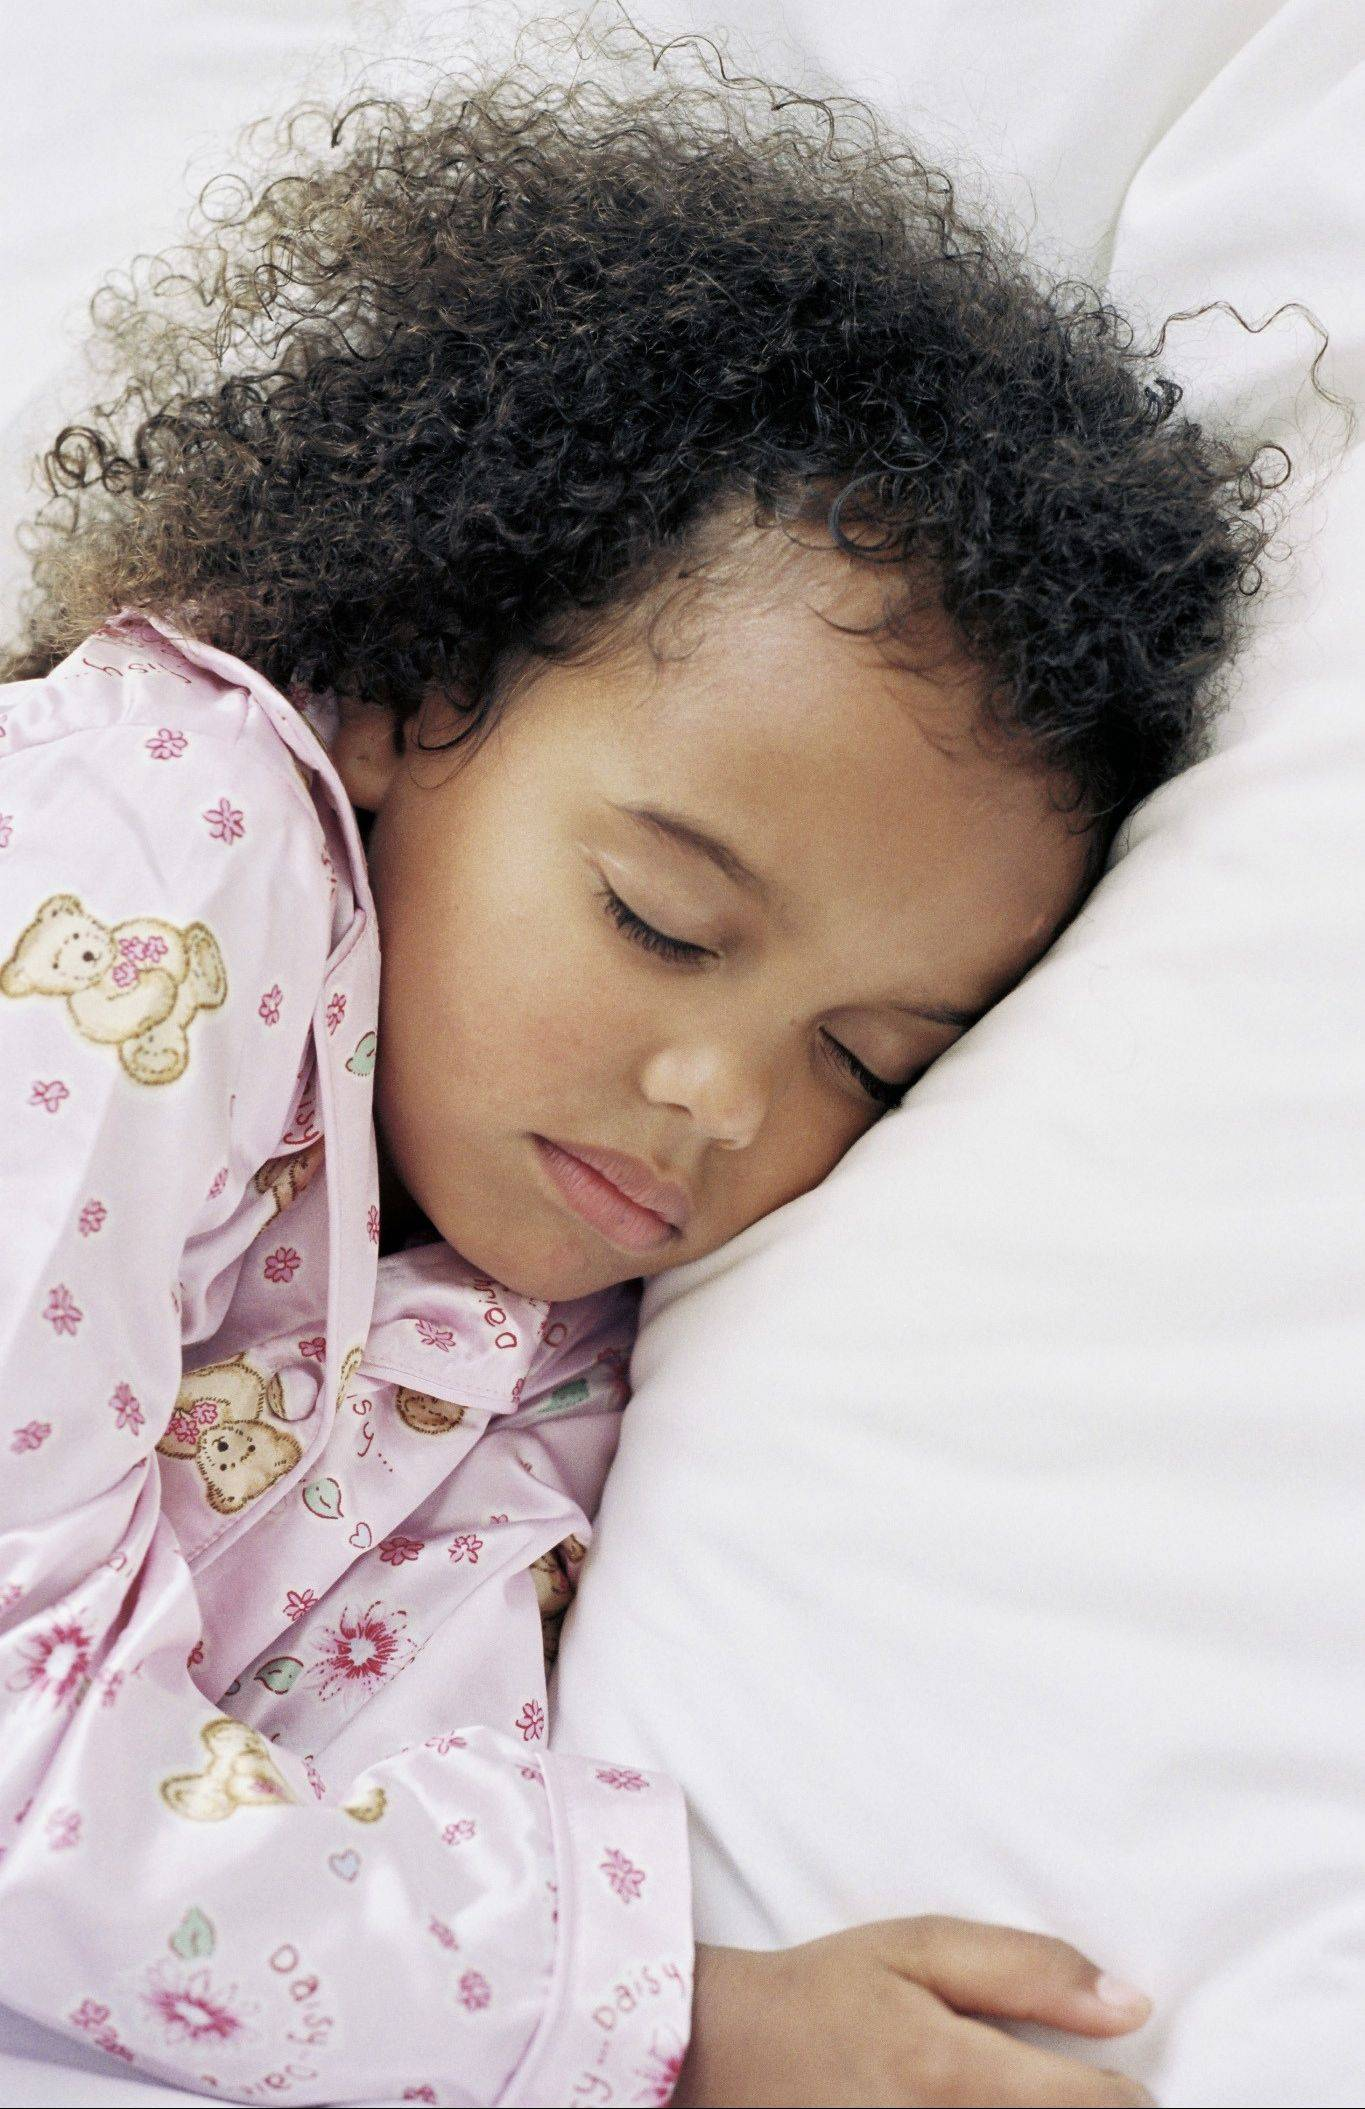 Experts recommend gradually getting children into a regular sleep routine before school begins.